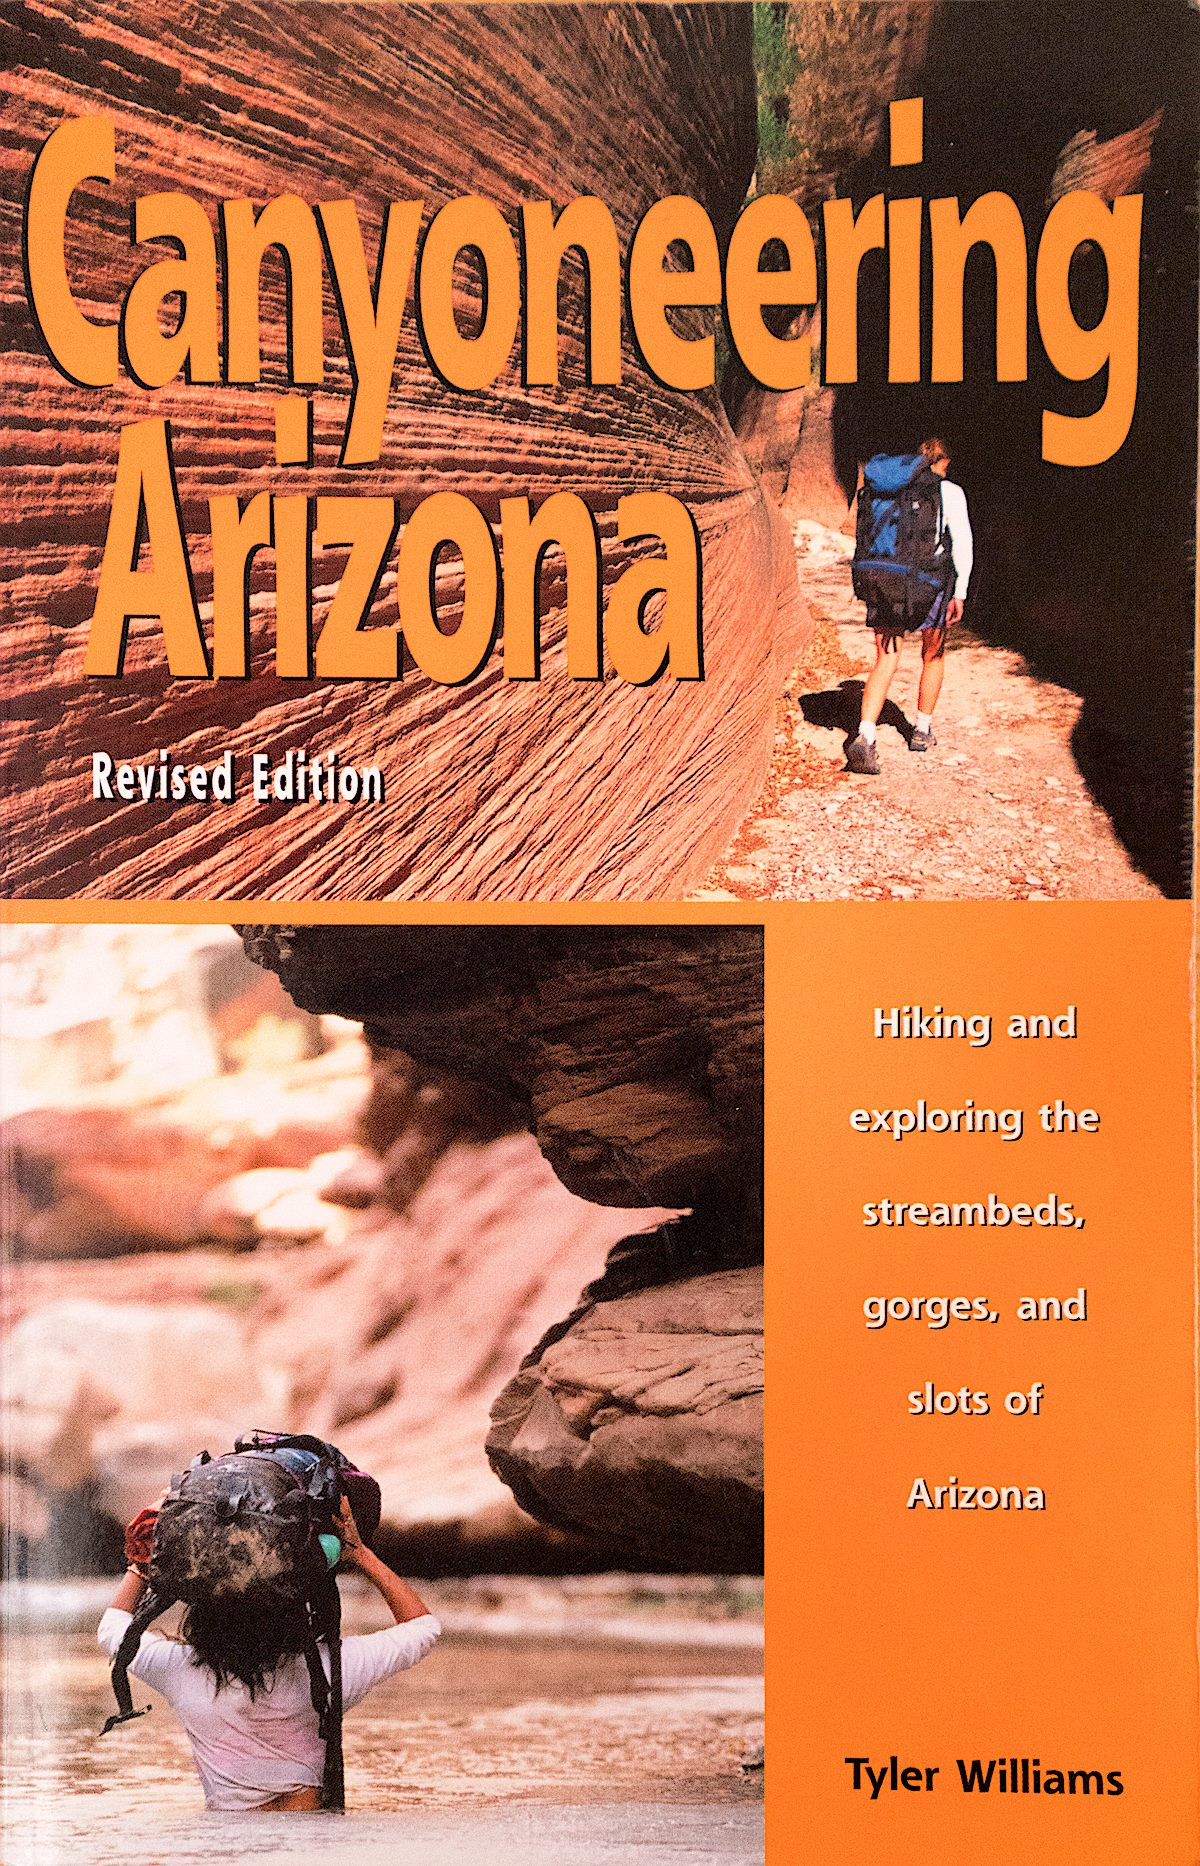 Canyoneering Arizona - Revised Version - 2005. December 2016.